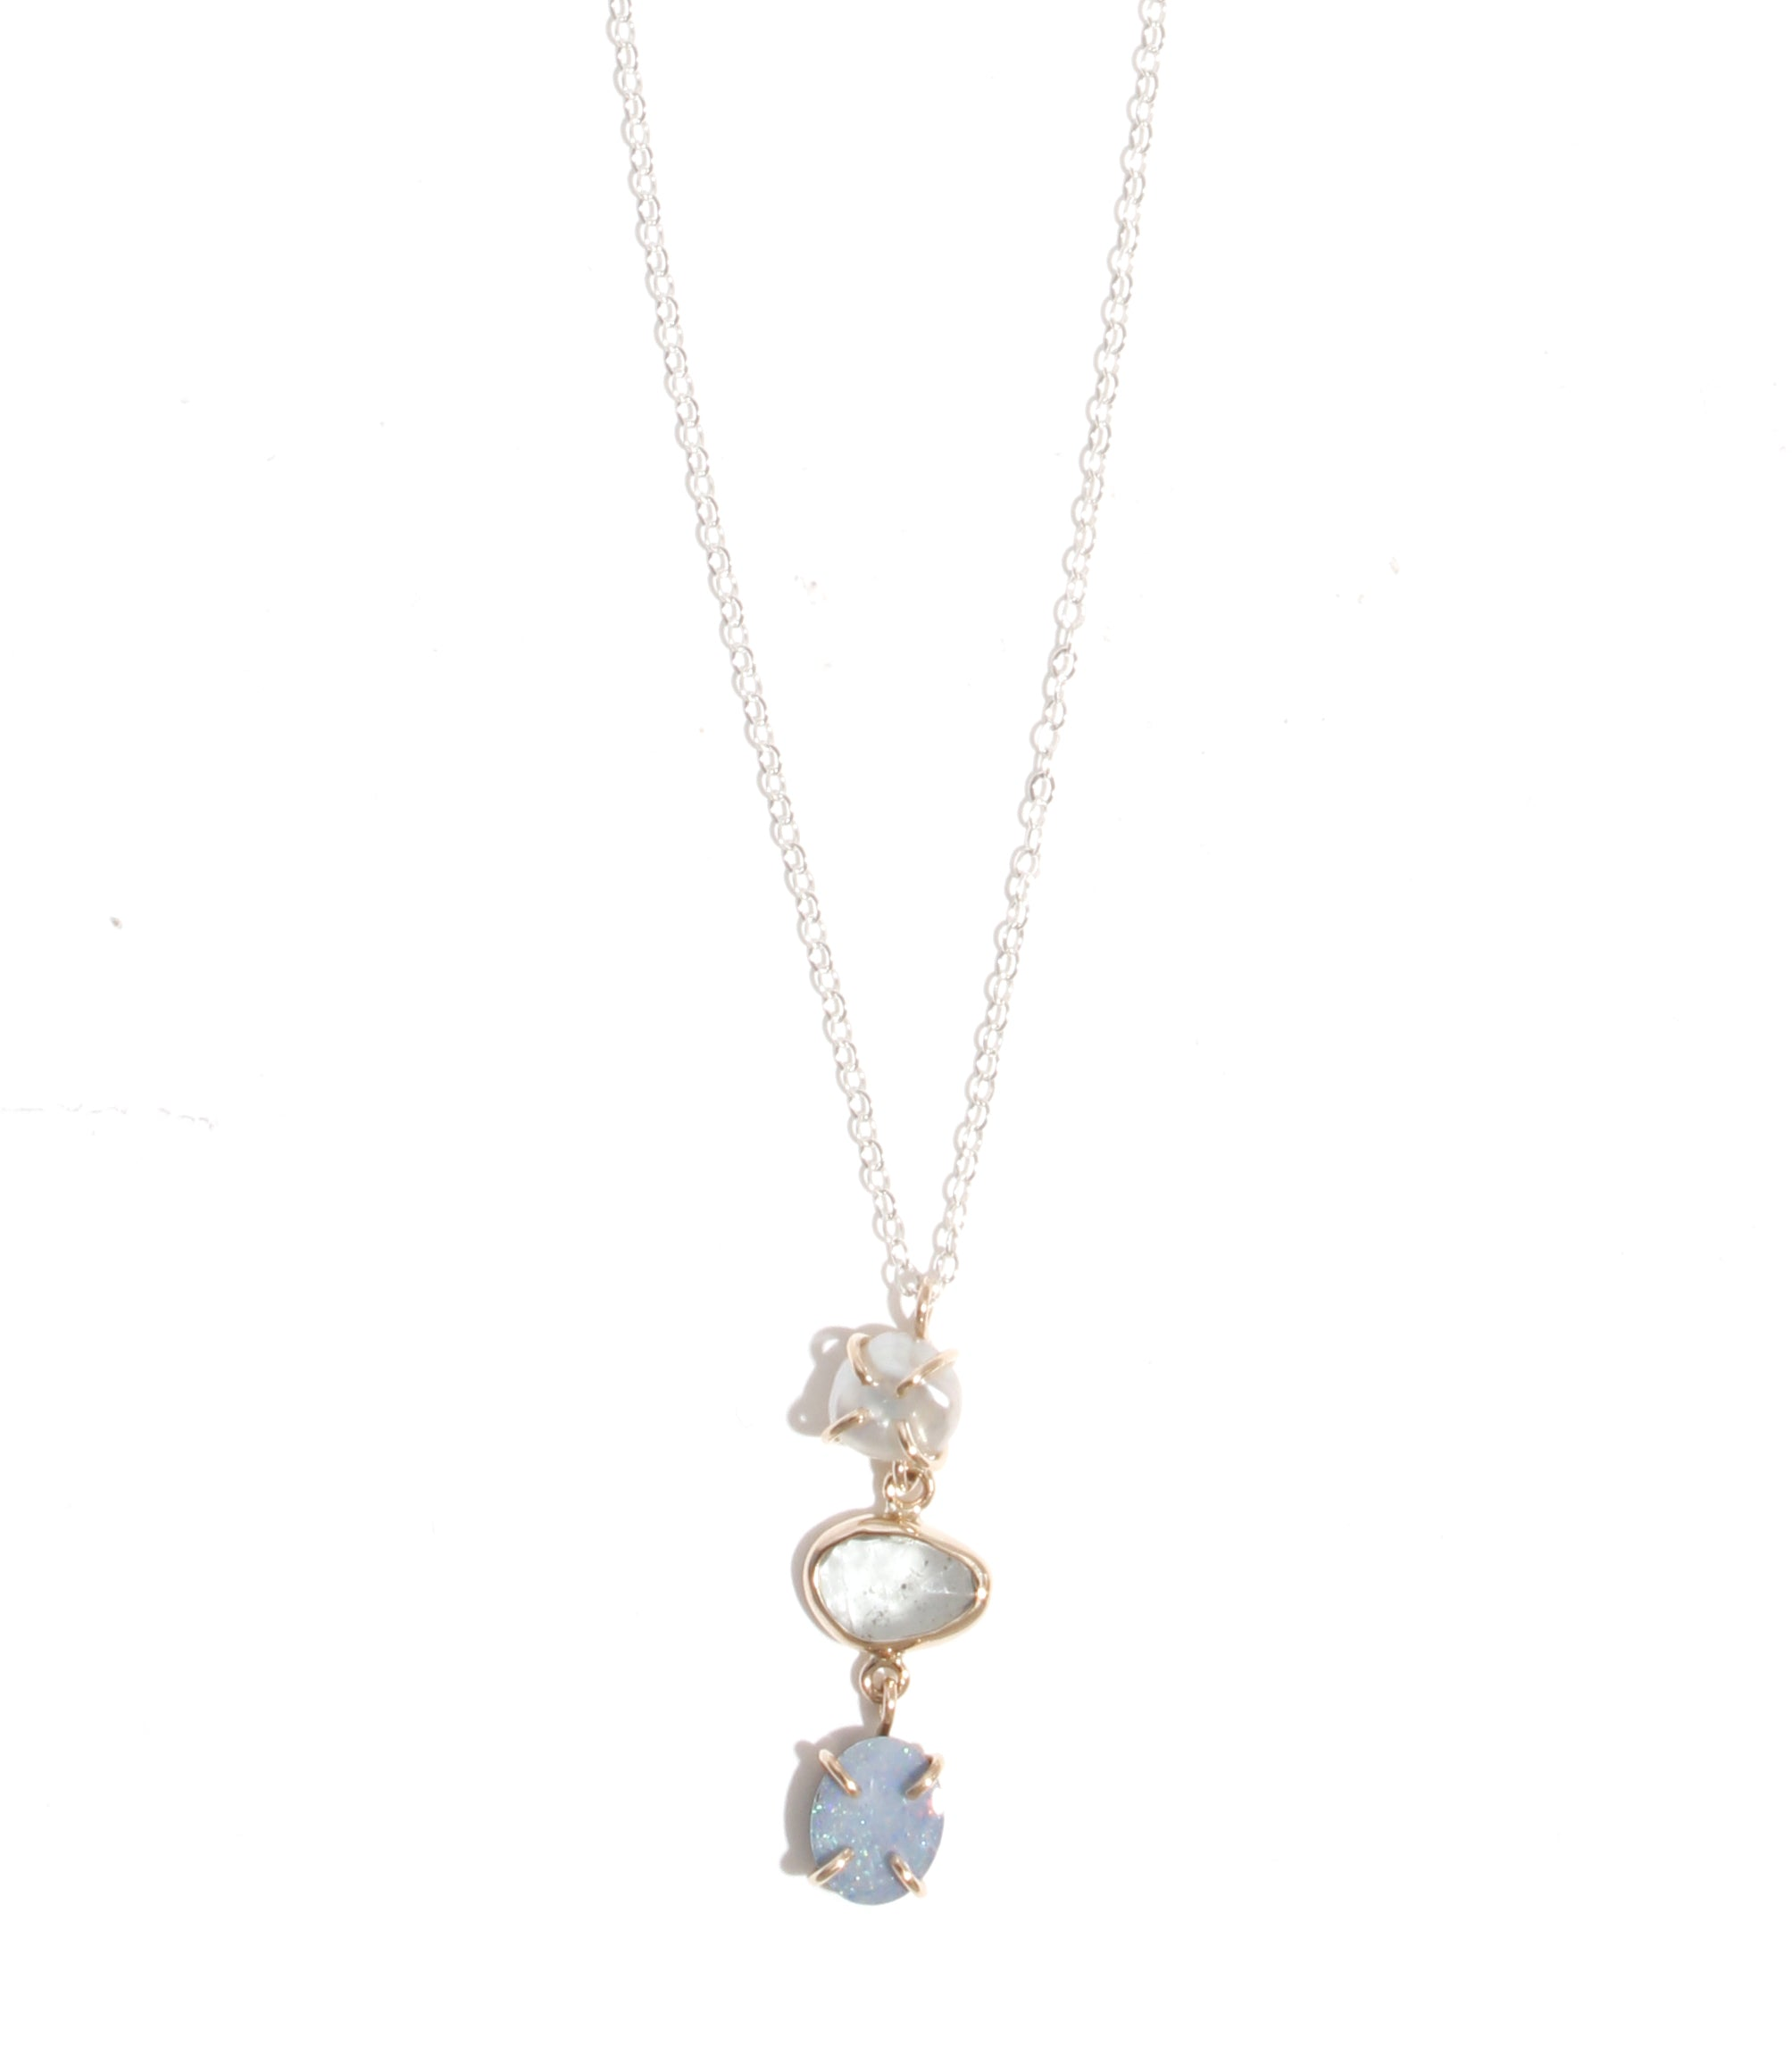 Pearl, Aqua, and Opal Drop Necklace - Melissa Joy Manning Jewelry